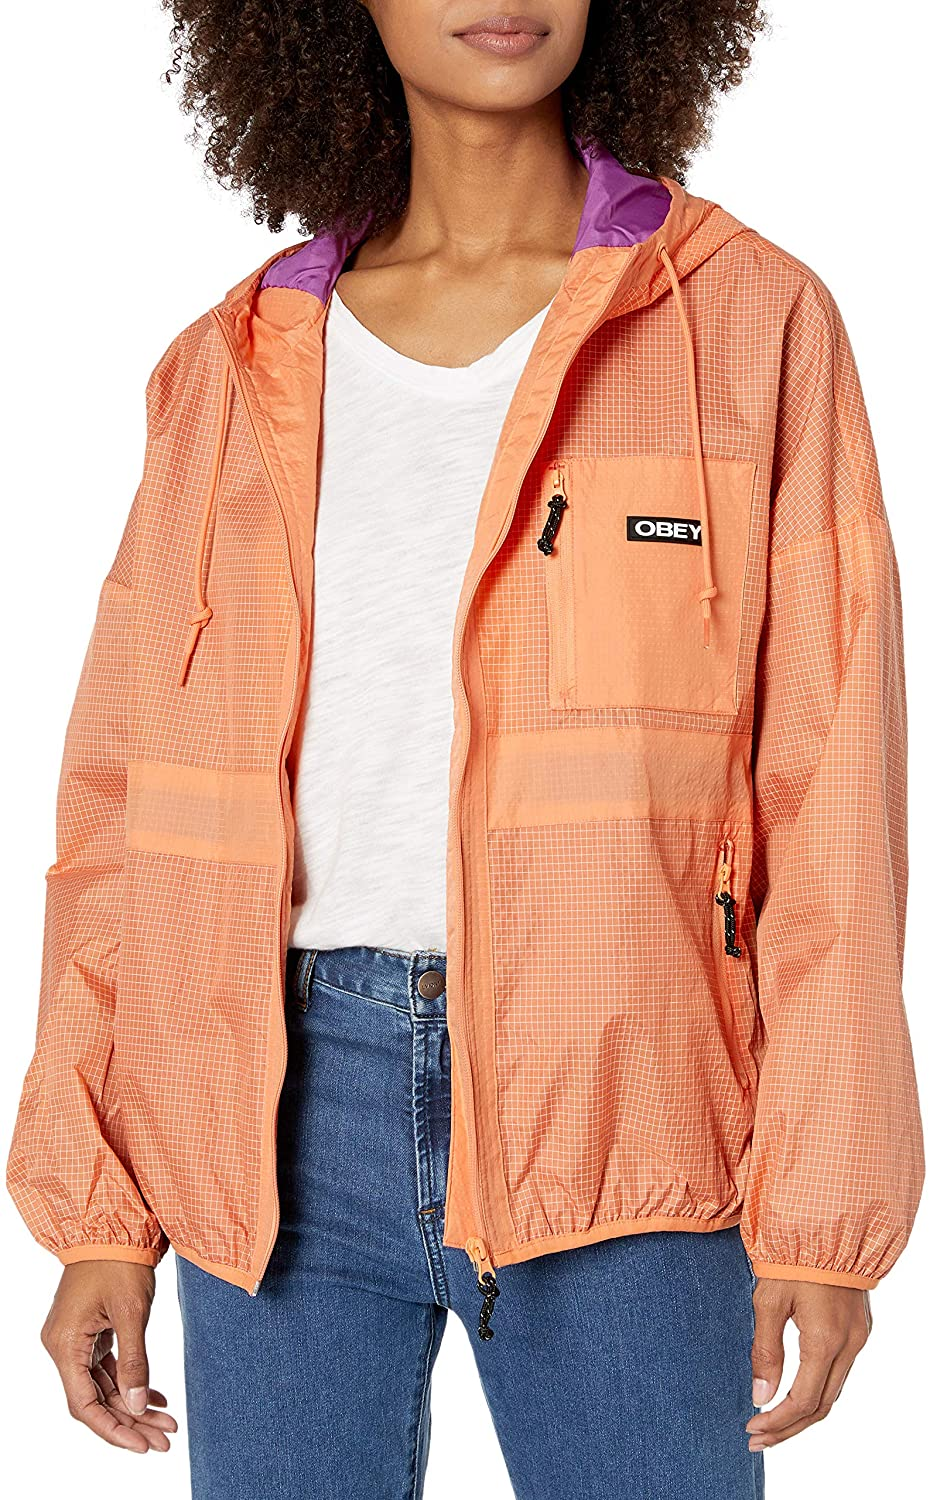 Obey Women's RIVERBED Jacket, Melon, X-Small